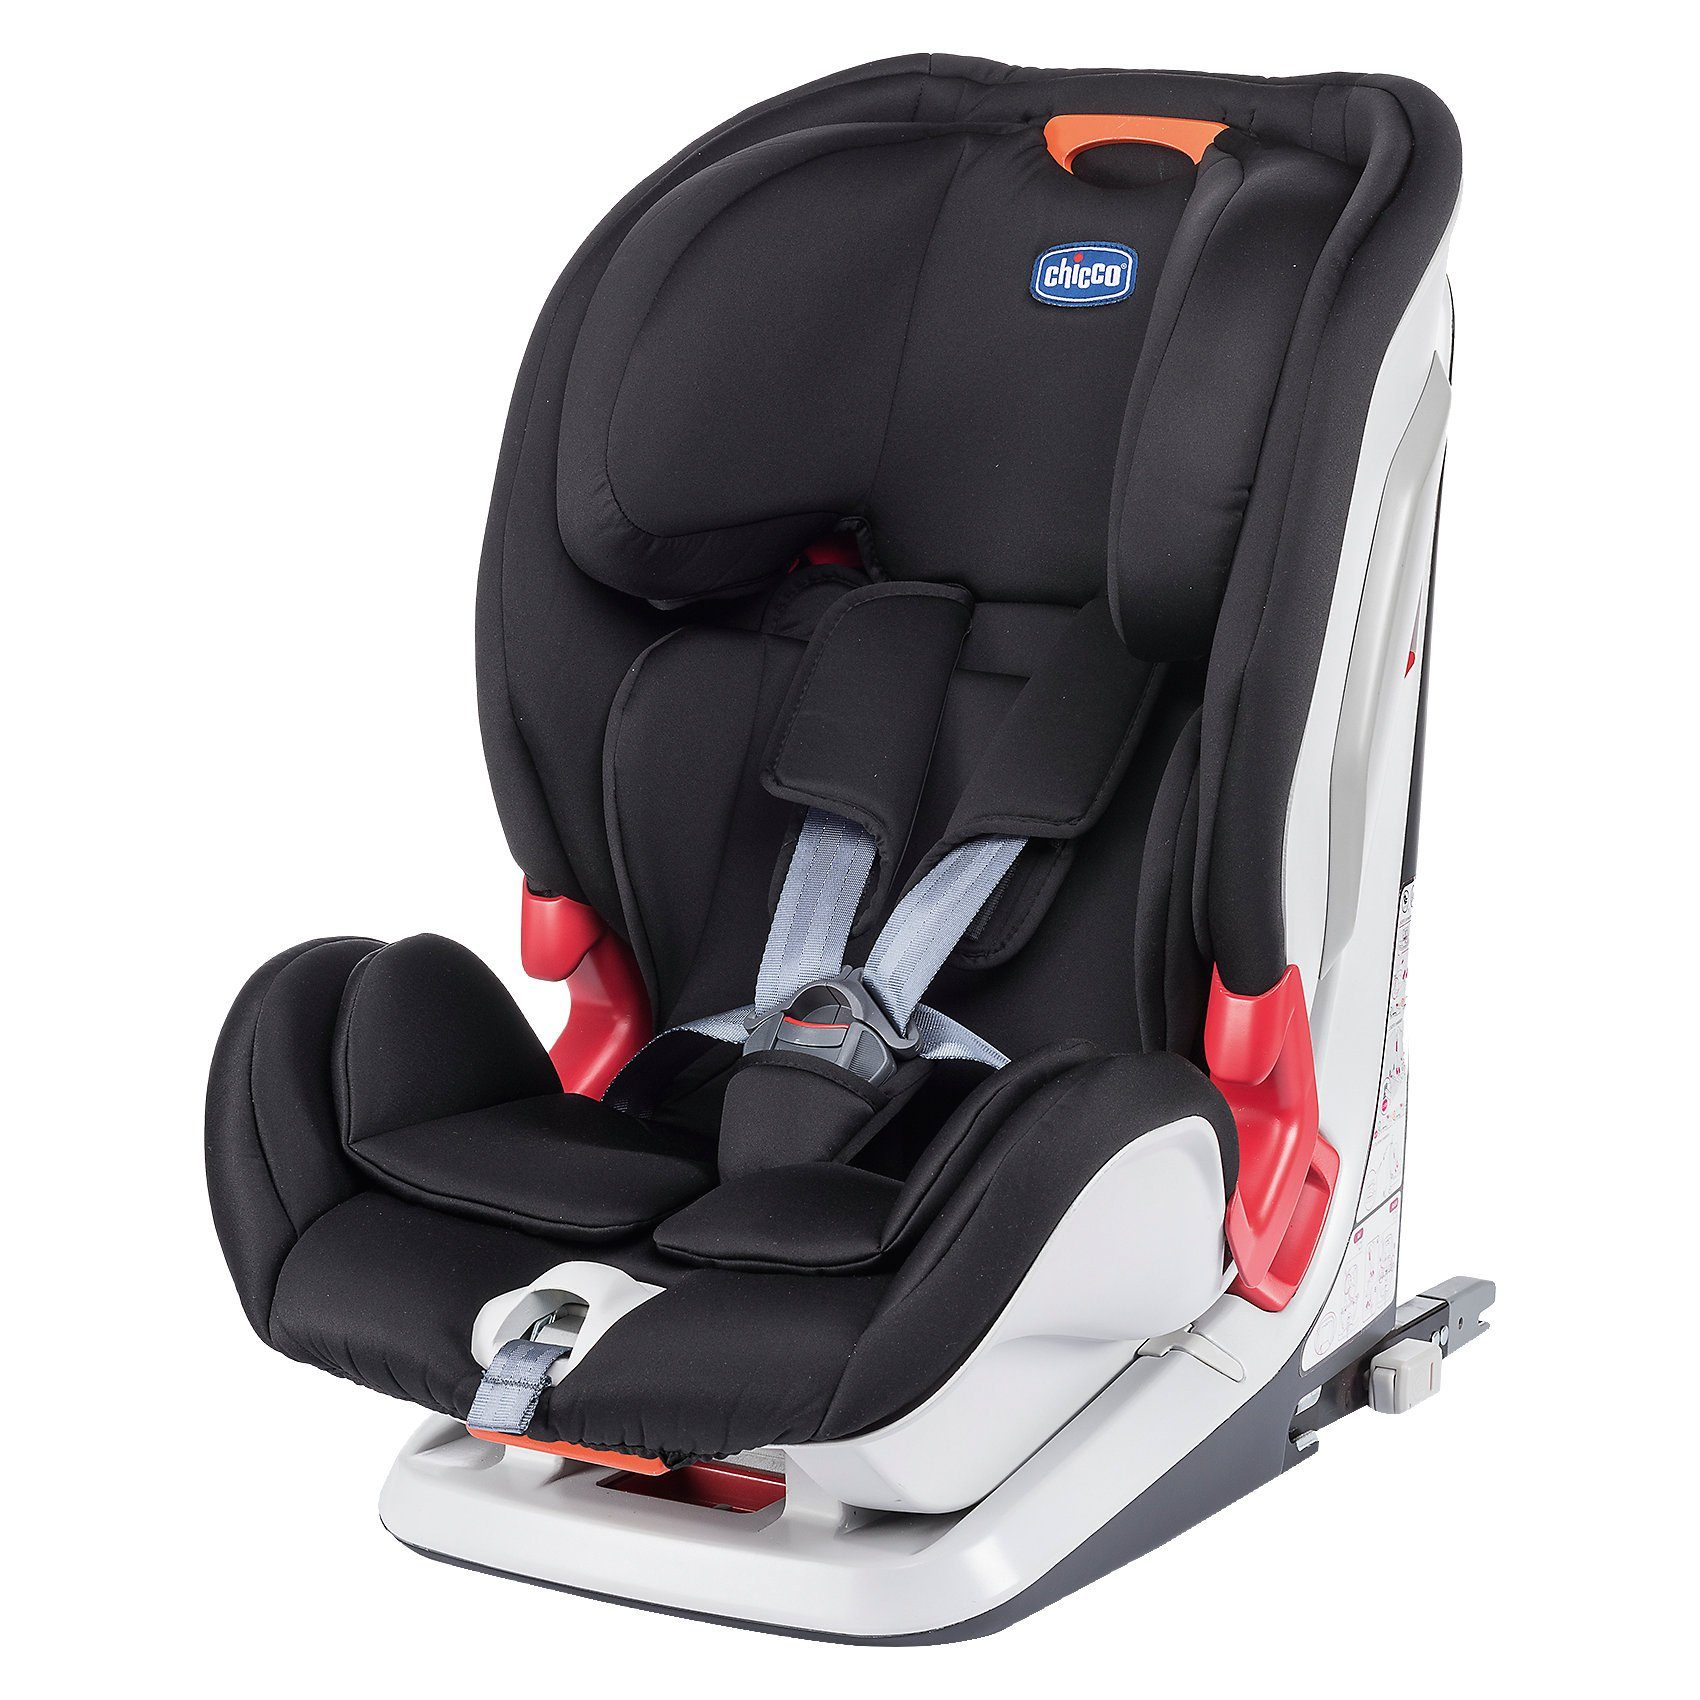 Maxi-cosi Auto-kindersitz Rubi Xp Poppy Red 2018 Chicco Auto Kindersitz Youniverse Fix Black 2018 Otto